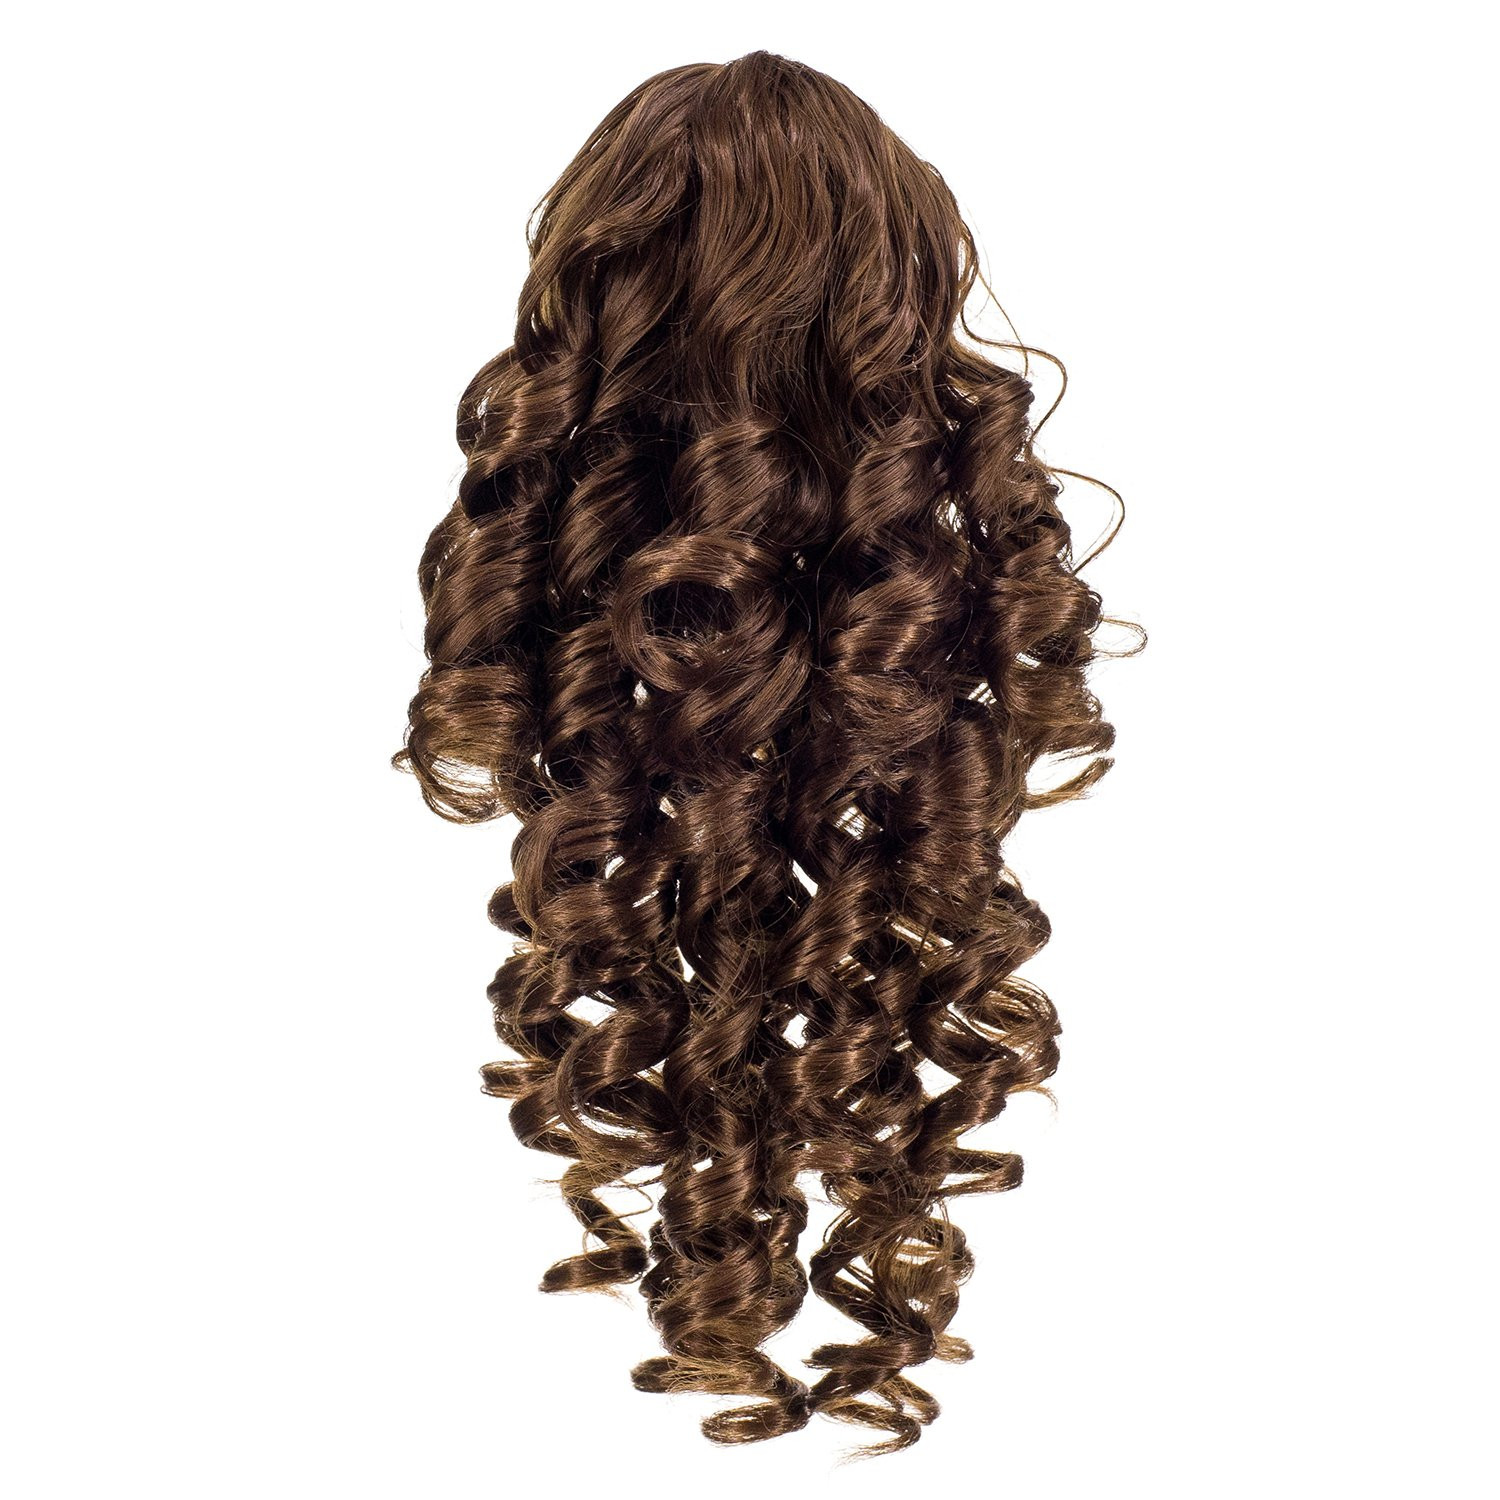 Light Brown-12# : SWACC 12-Inch Short Screw Curls Claw Clip Ponytail Extensions Synthetic Clip in Drawstring Curly Ponytail Hairpiece Jaw Clip Hair Extension (Light Brown-12#)